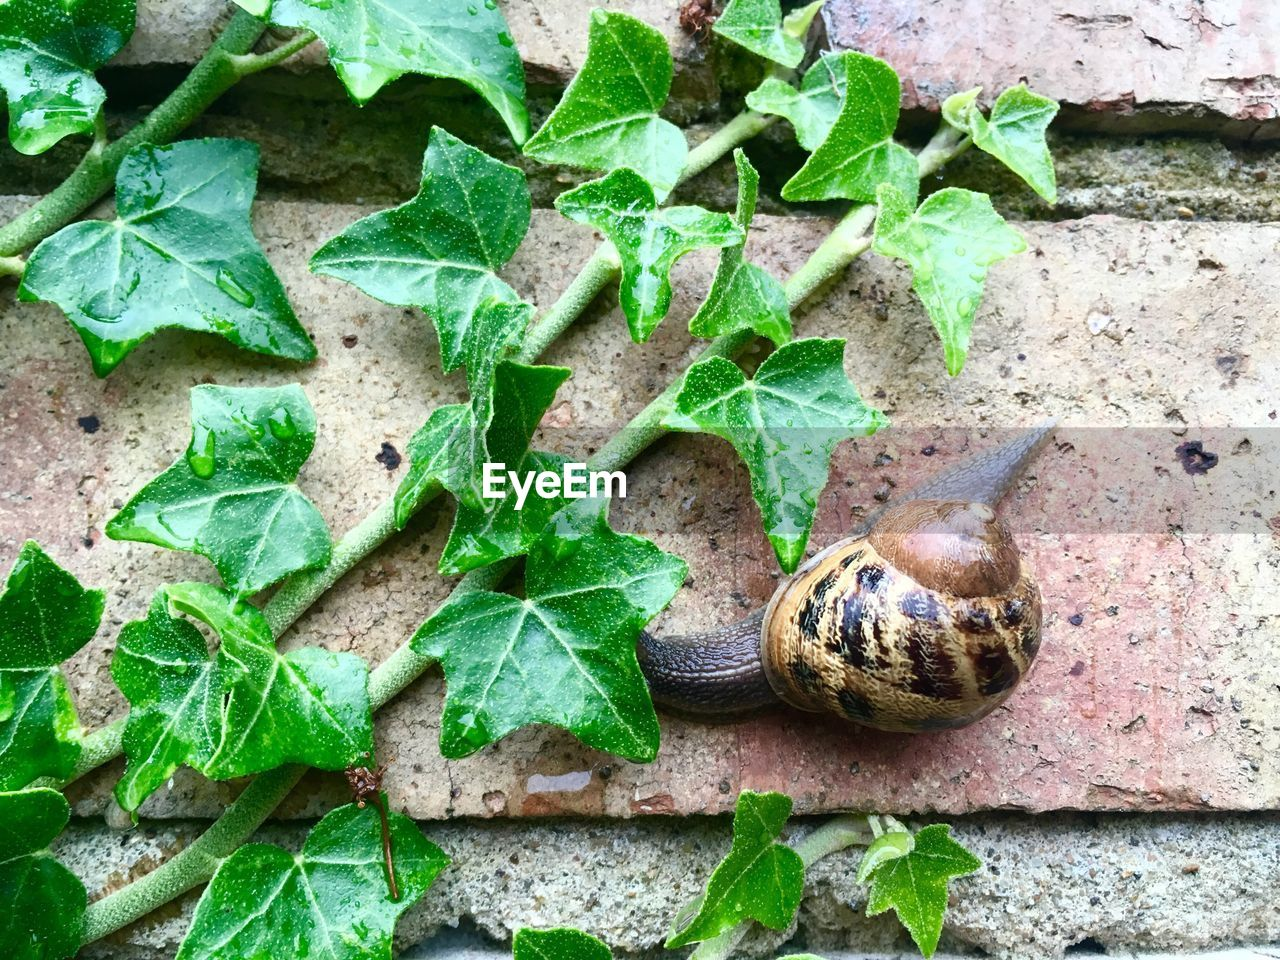 CLOSE-UP HIGH ANGLE VIEW OF SNAIL ON PLANT